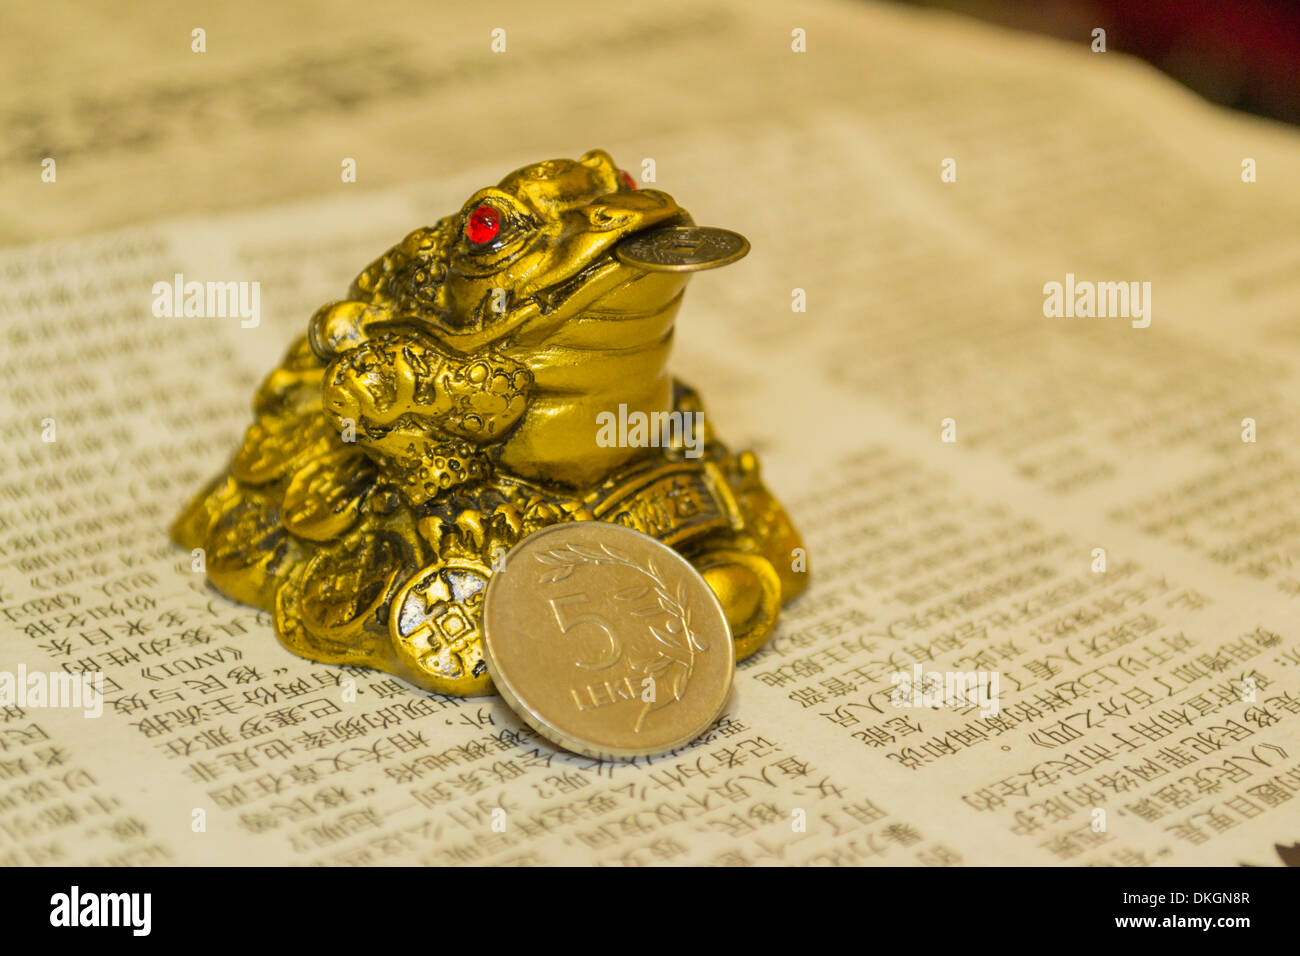 Money toad on Chinese newspaper holding a five Albanian Lek coin (ALL) - Stock Image